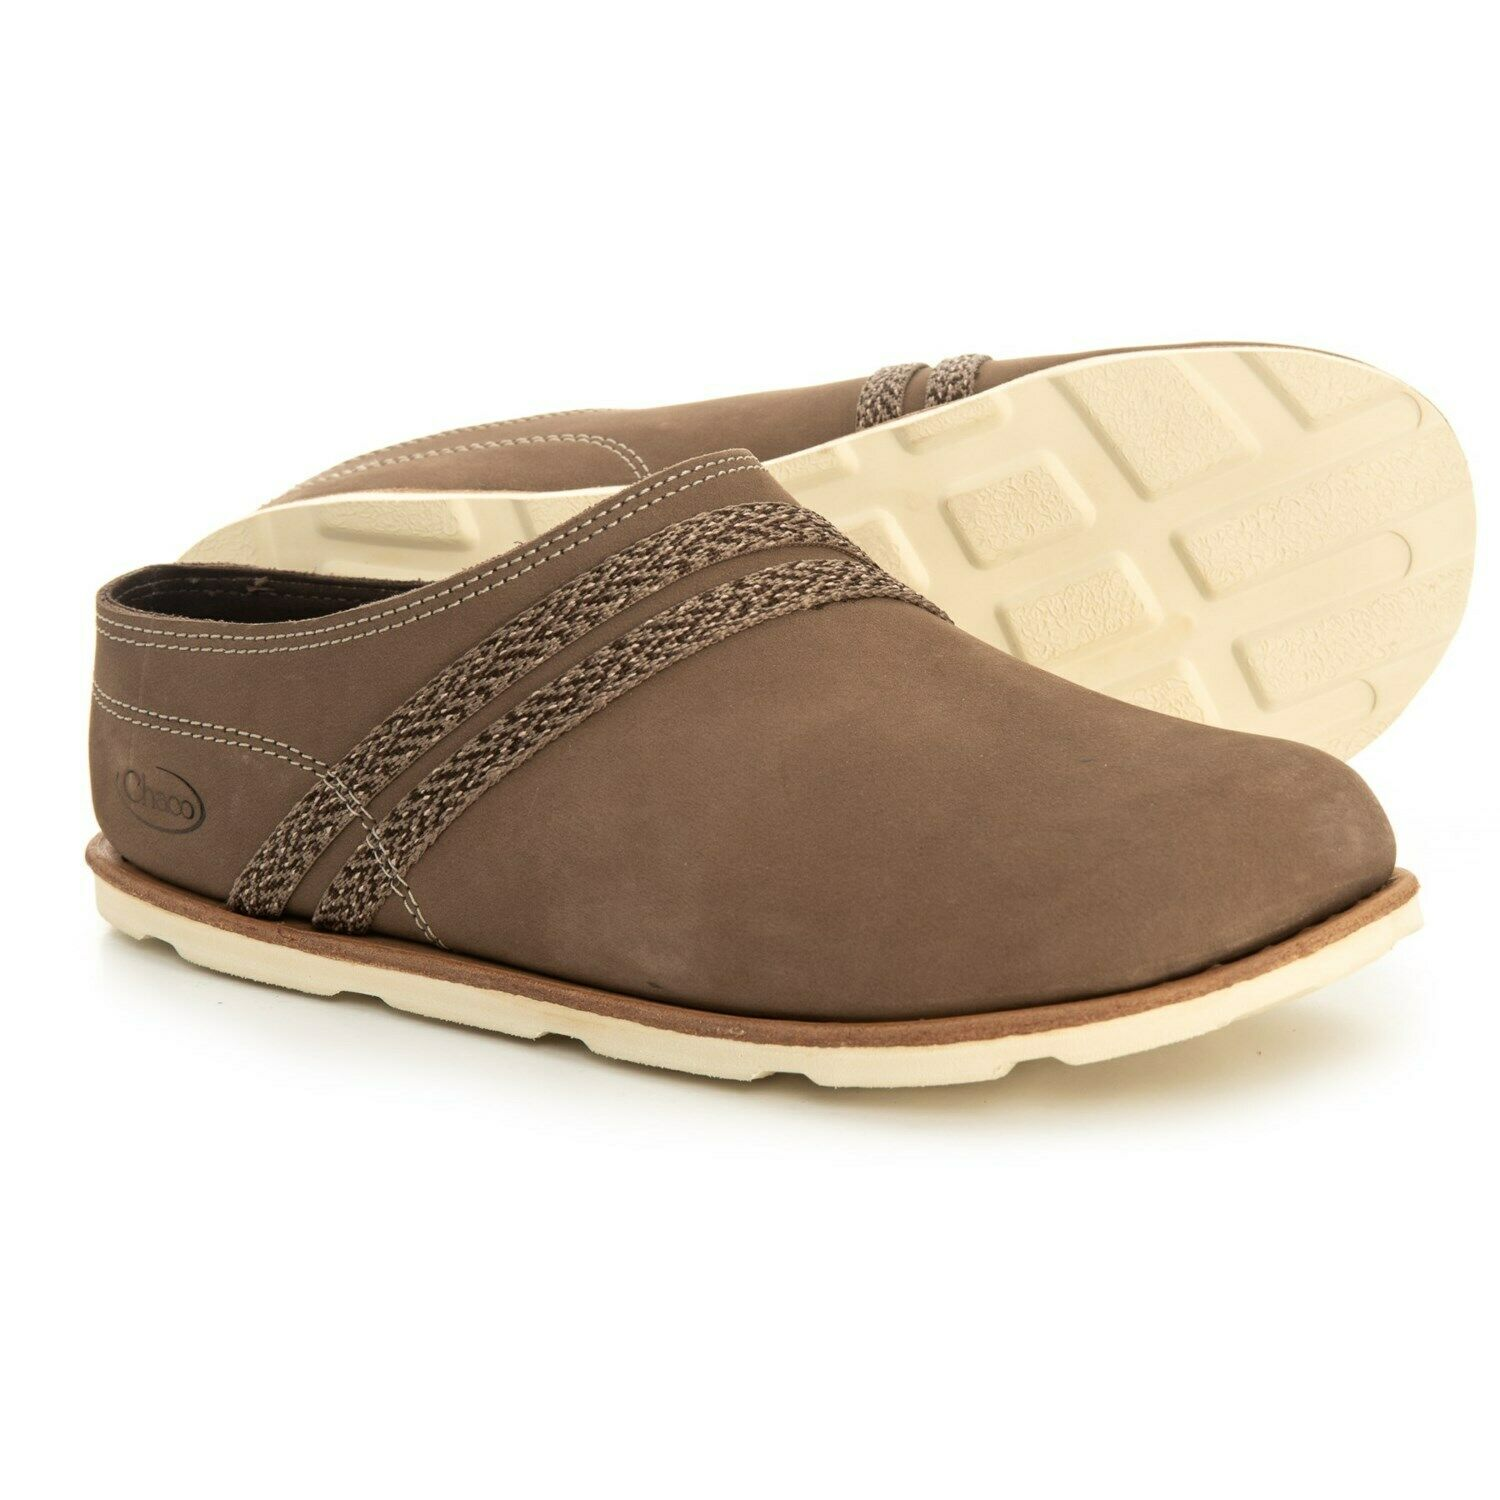 CHACO WOMEN'S LEATHER HARPER SLIDE SHOES CARIBOU SIZE 7